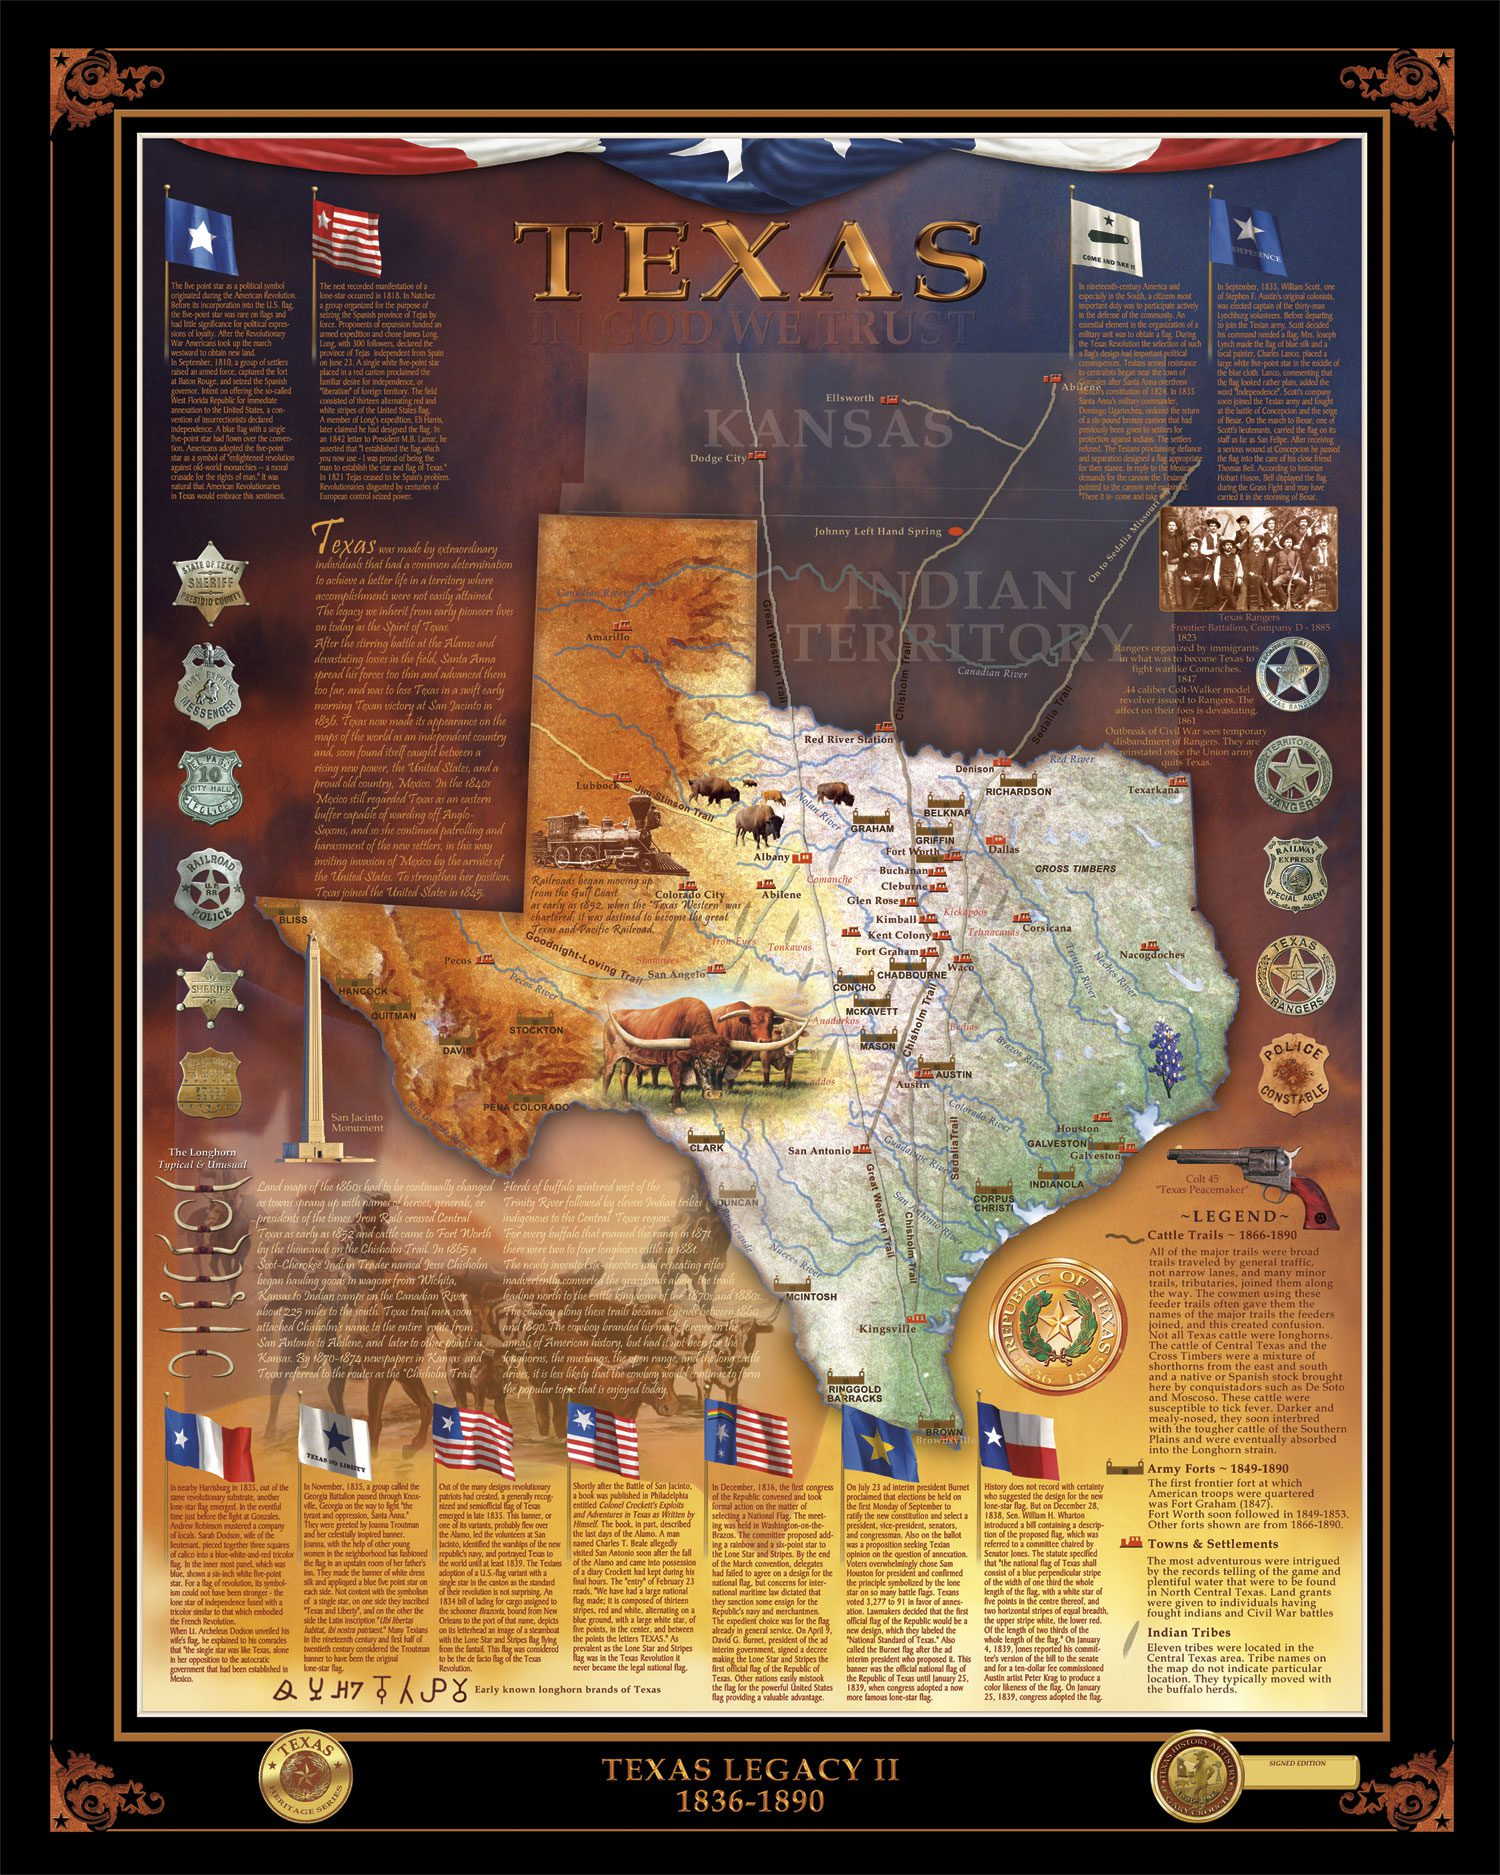 Texas Legacy II by Texas History Artist Gary Crouch